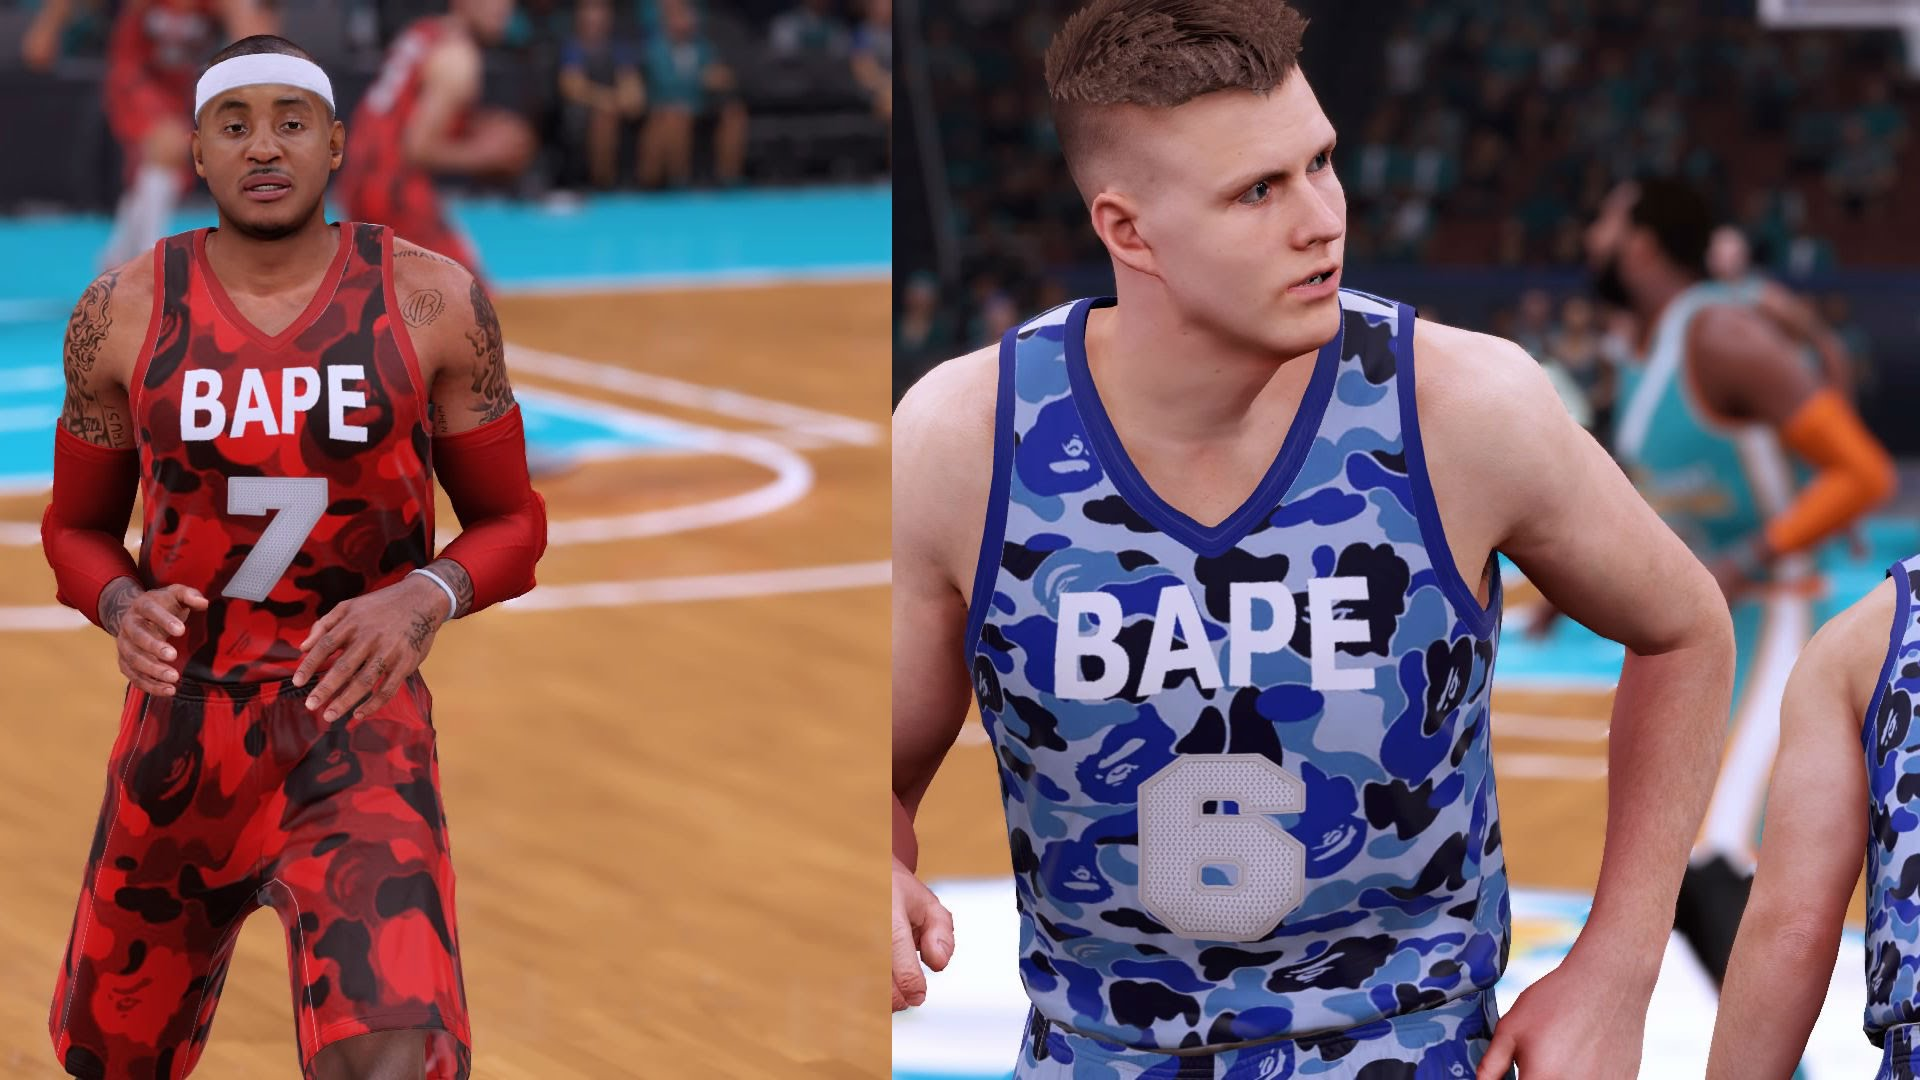 New York Knicks x A Bathing Ape NBA 2K16 Rebrand